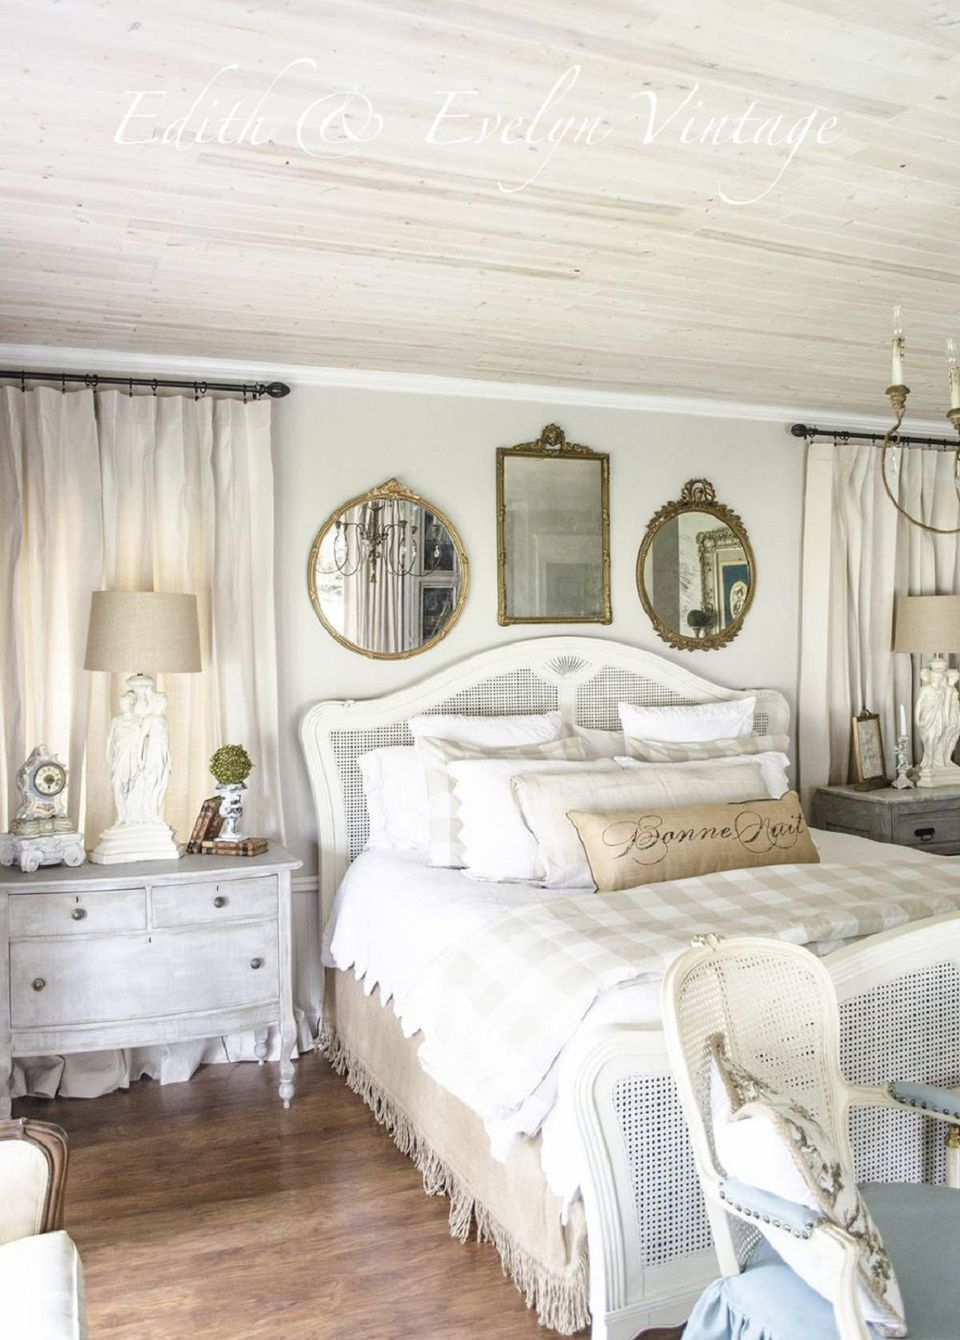 Serene French country bedroom. French Country Bedroom Decorating Ideas and Photos